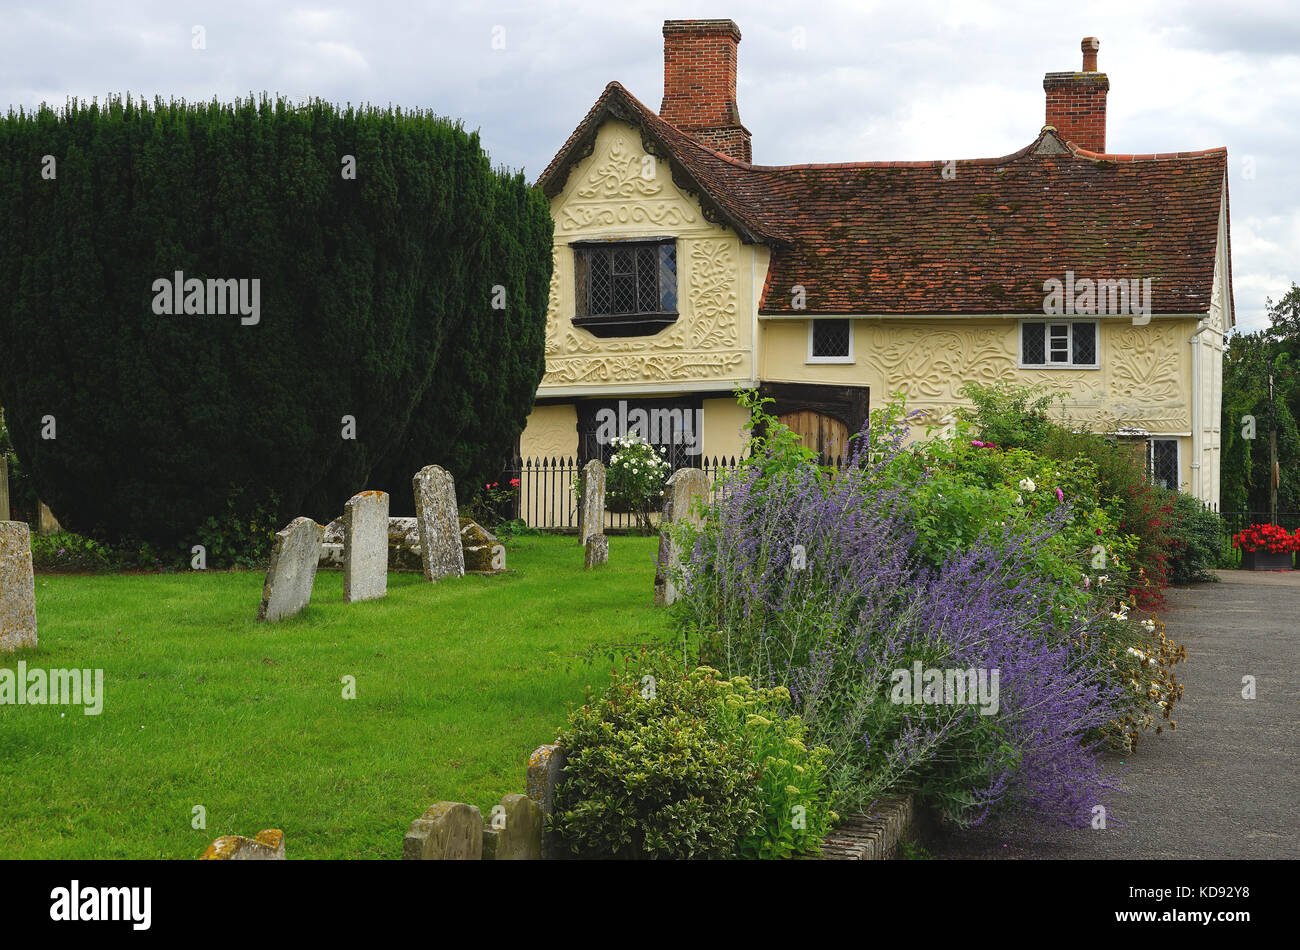 The pargeted 'Ancient House' at Clare,Suffolk Stock Photo